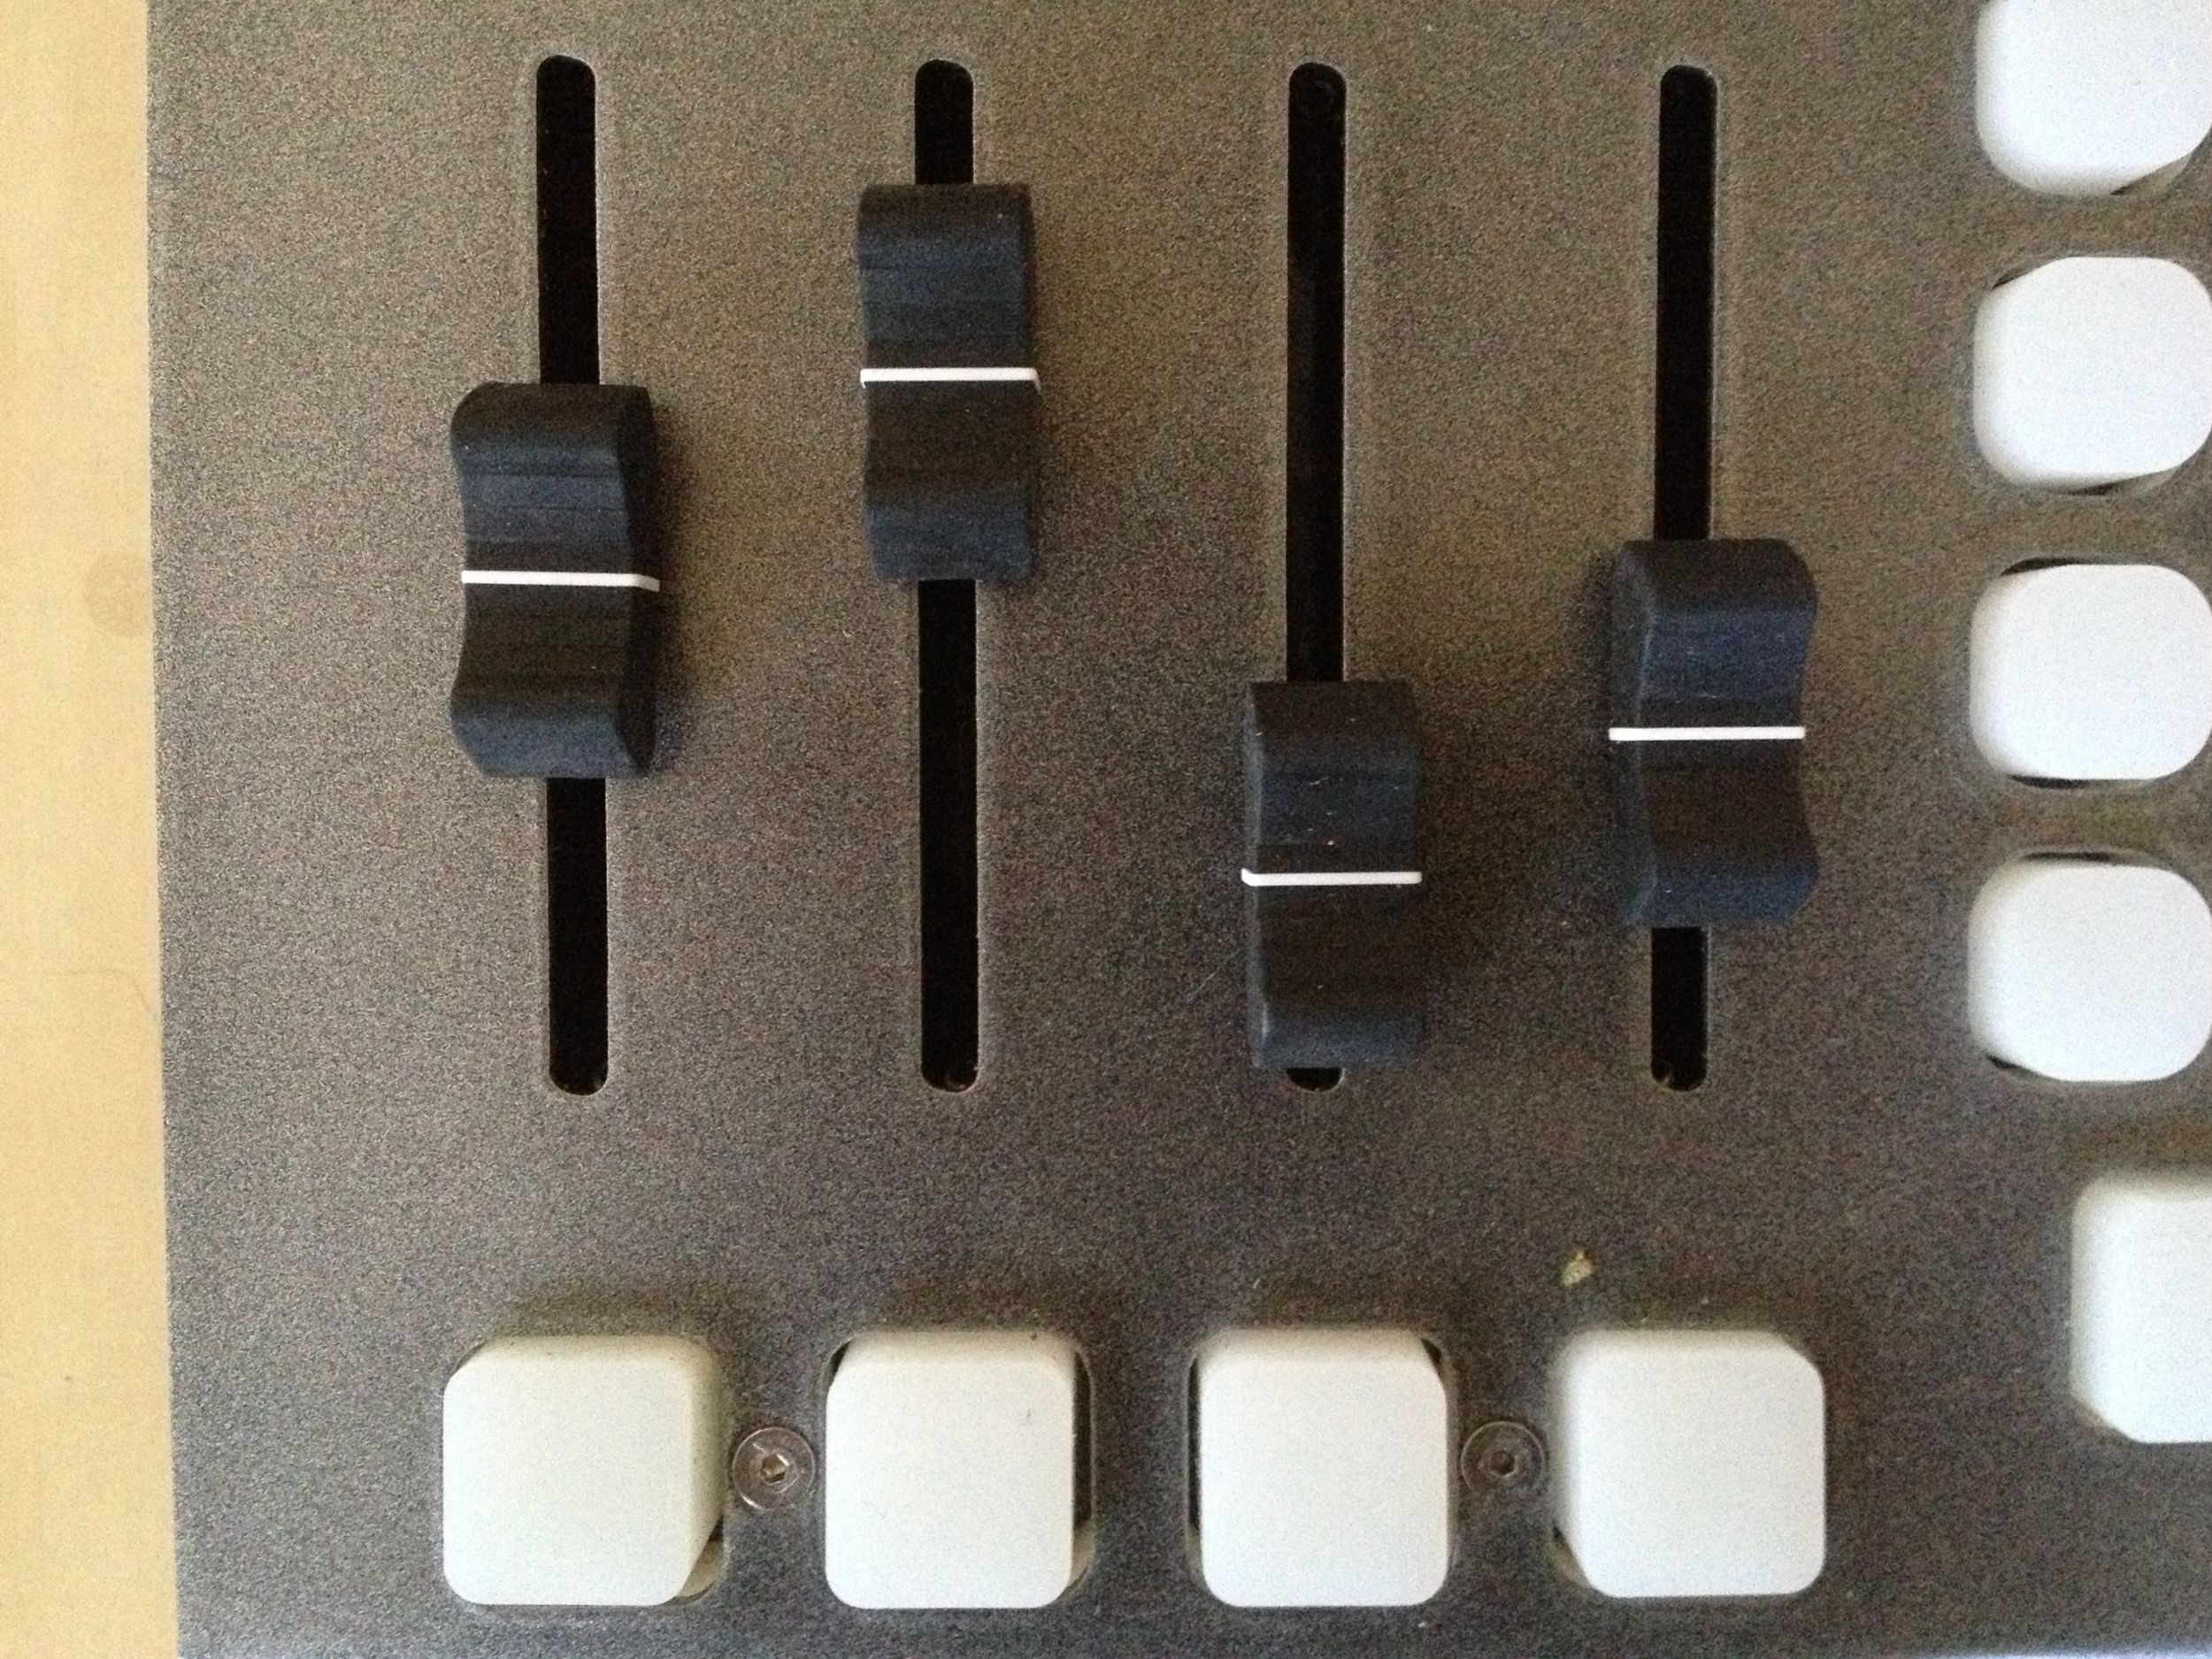 Left and right side faders set opacities for sources 1, 2, the overlay, and the masking for each bus separately.